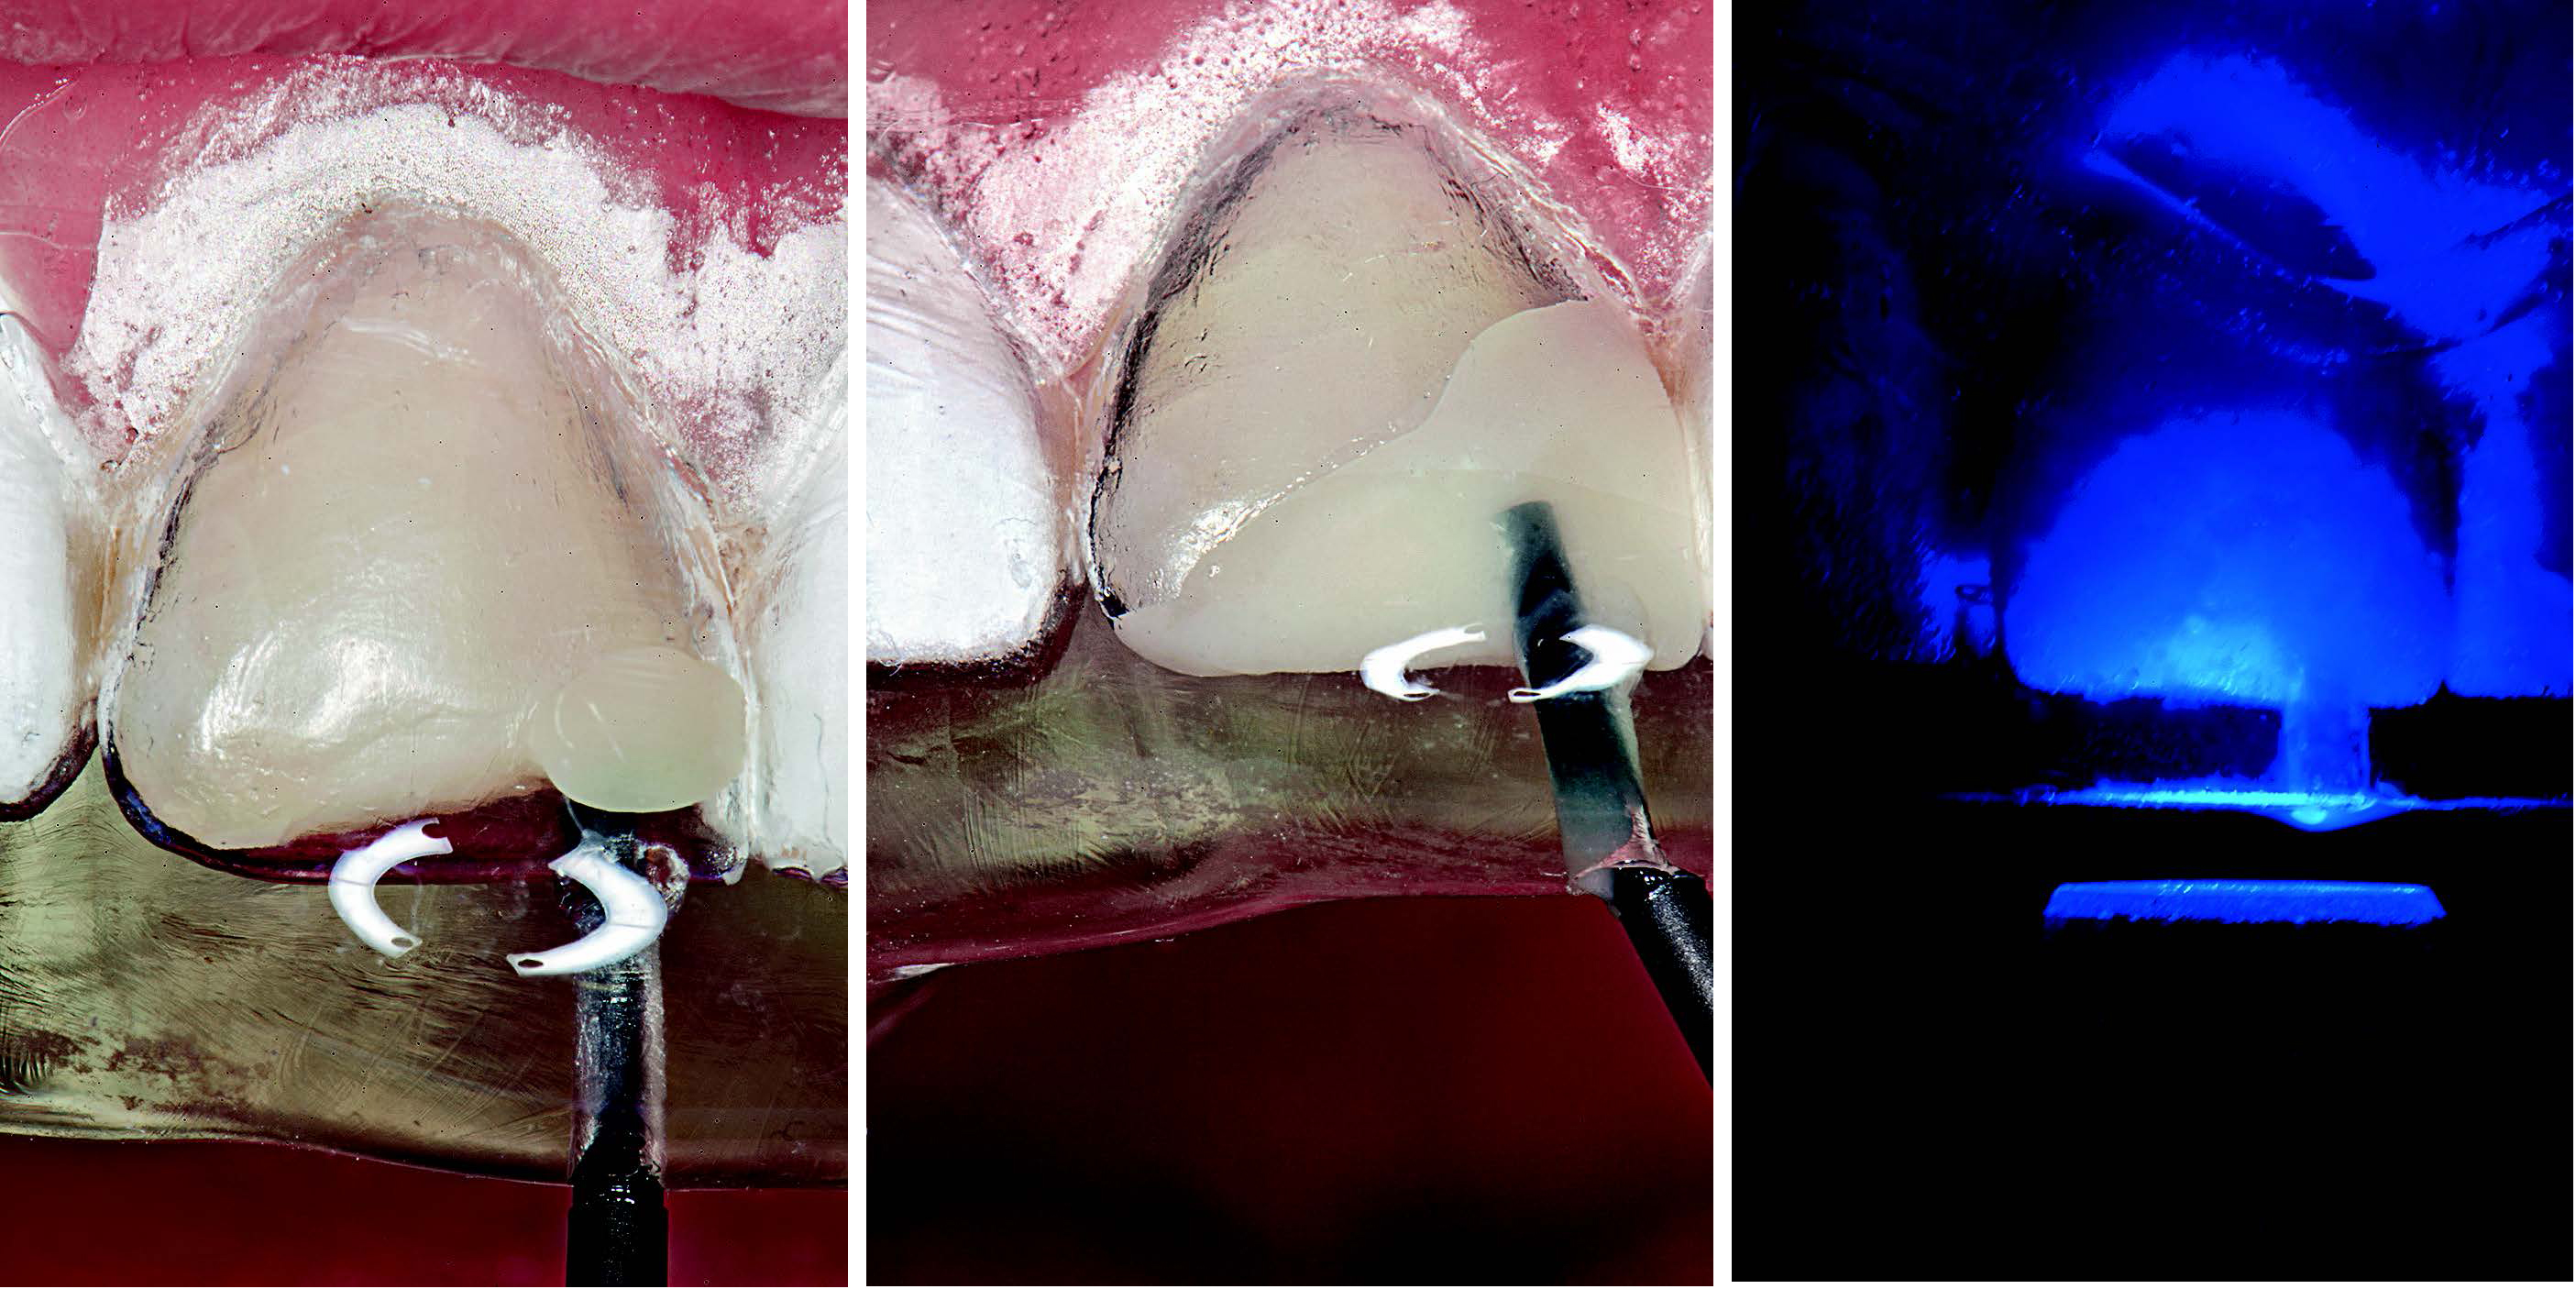 The clear silicone matrix was placed over the anterior segment of the maxillary arch, and an opacious A2-shaded flowable resin composite (G-aenial Universal Flo) was initially injected through a small opening above each tooth. An A1-shaded flowable resin composite was then injected to mix with the A2-shaded composite (inverse injection layering technique). The resin composite was cured through the clear resin matrix on the incisal, facial, and lingual aspects for 40 seconds.